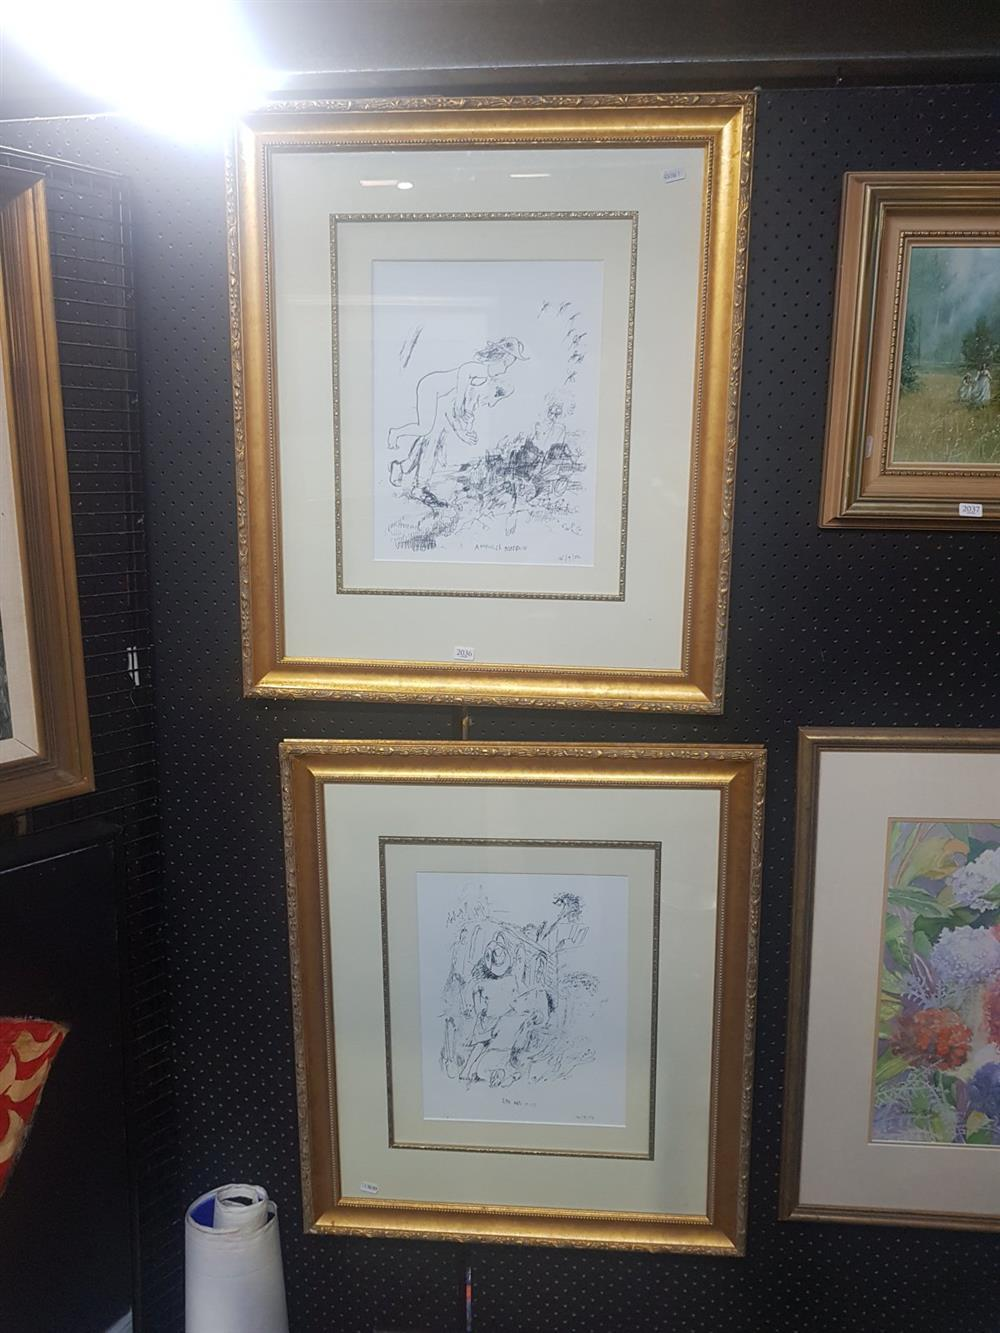 Garry Shead (2 works) 'Anapholes Mosquito'; 'Ern and Muse', decorative prints